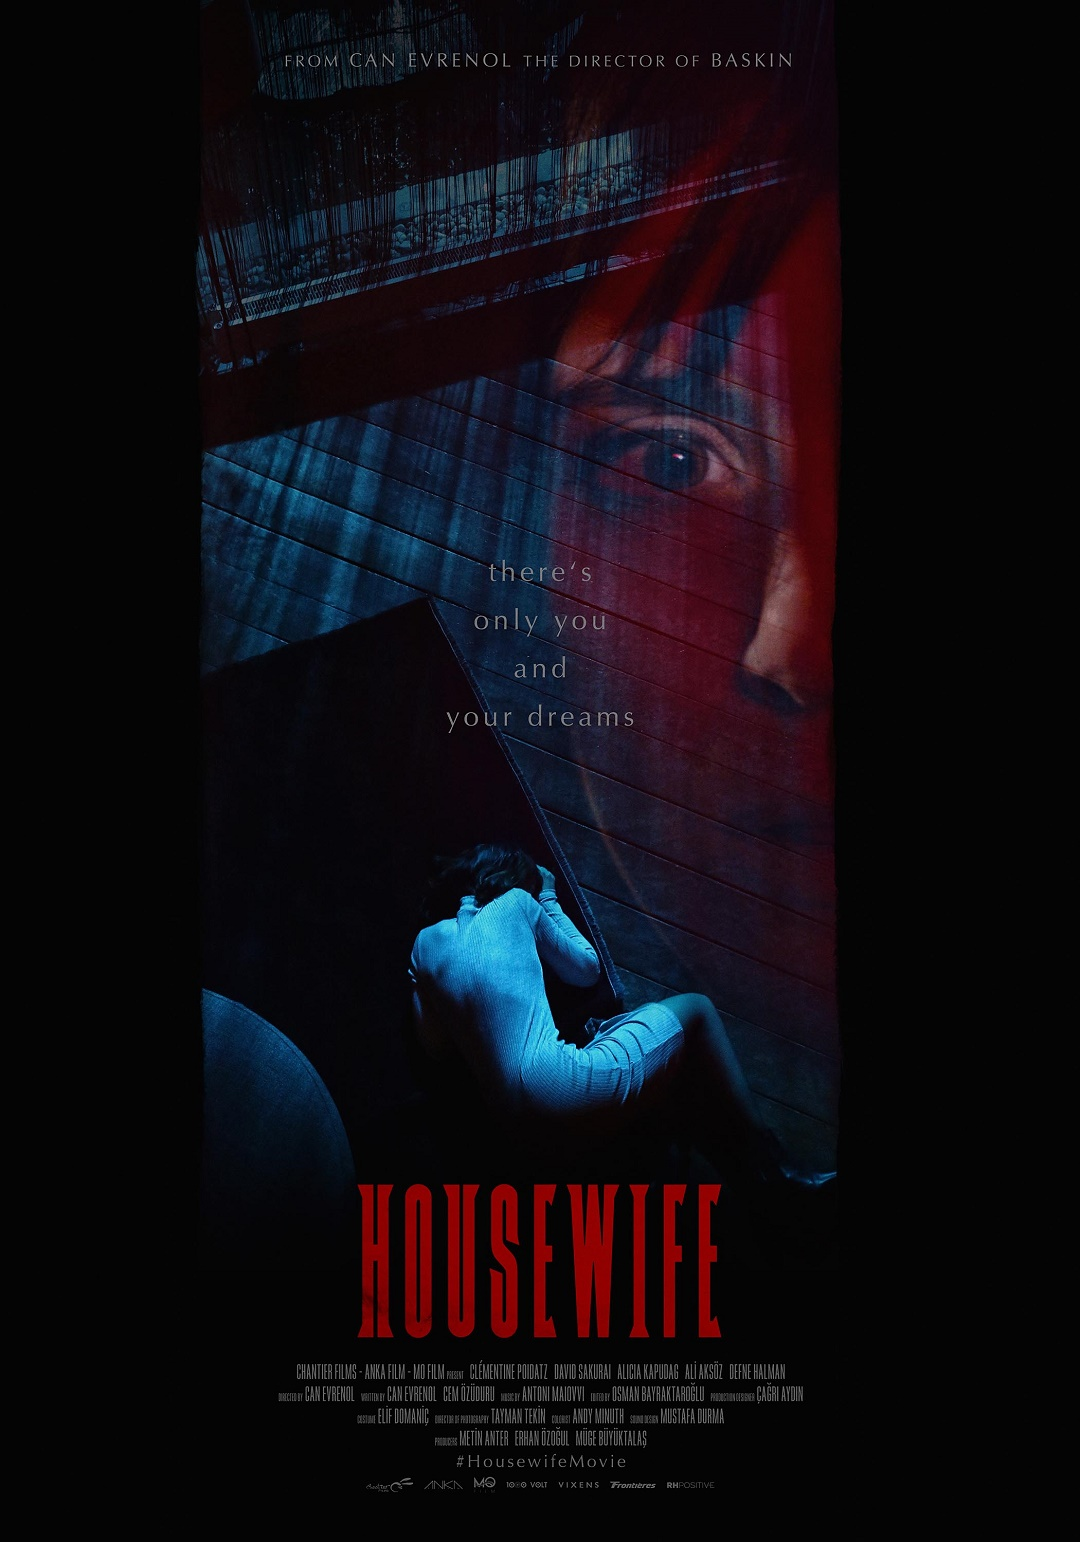 HOUSEWIFE_KEYART_70x100 `